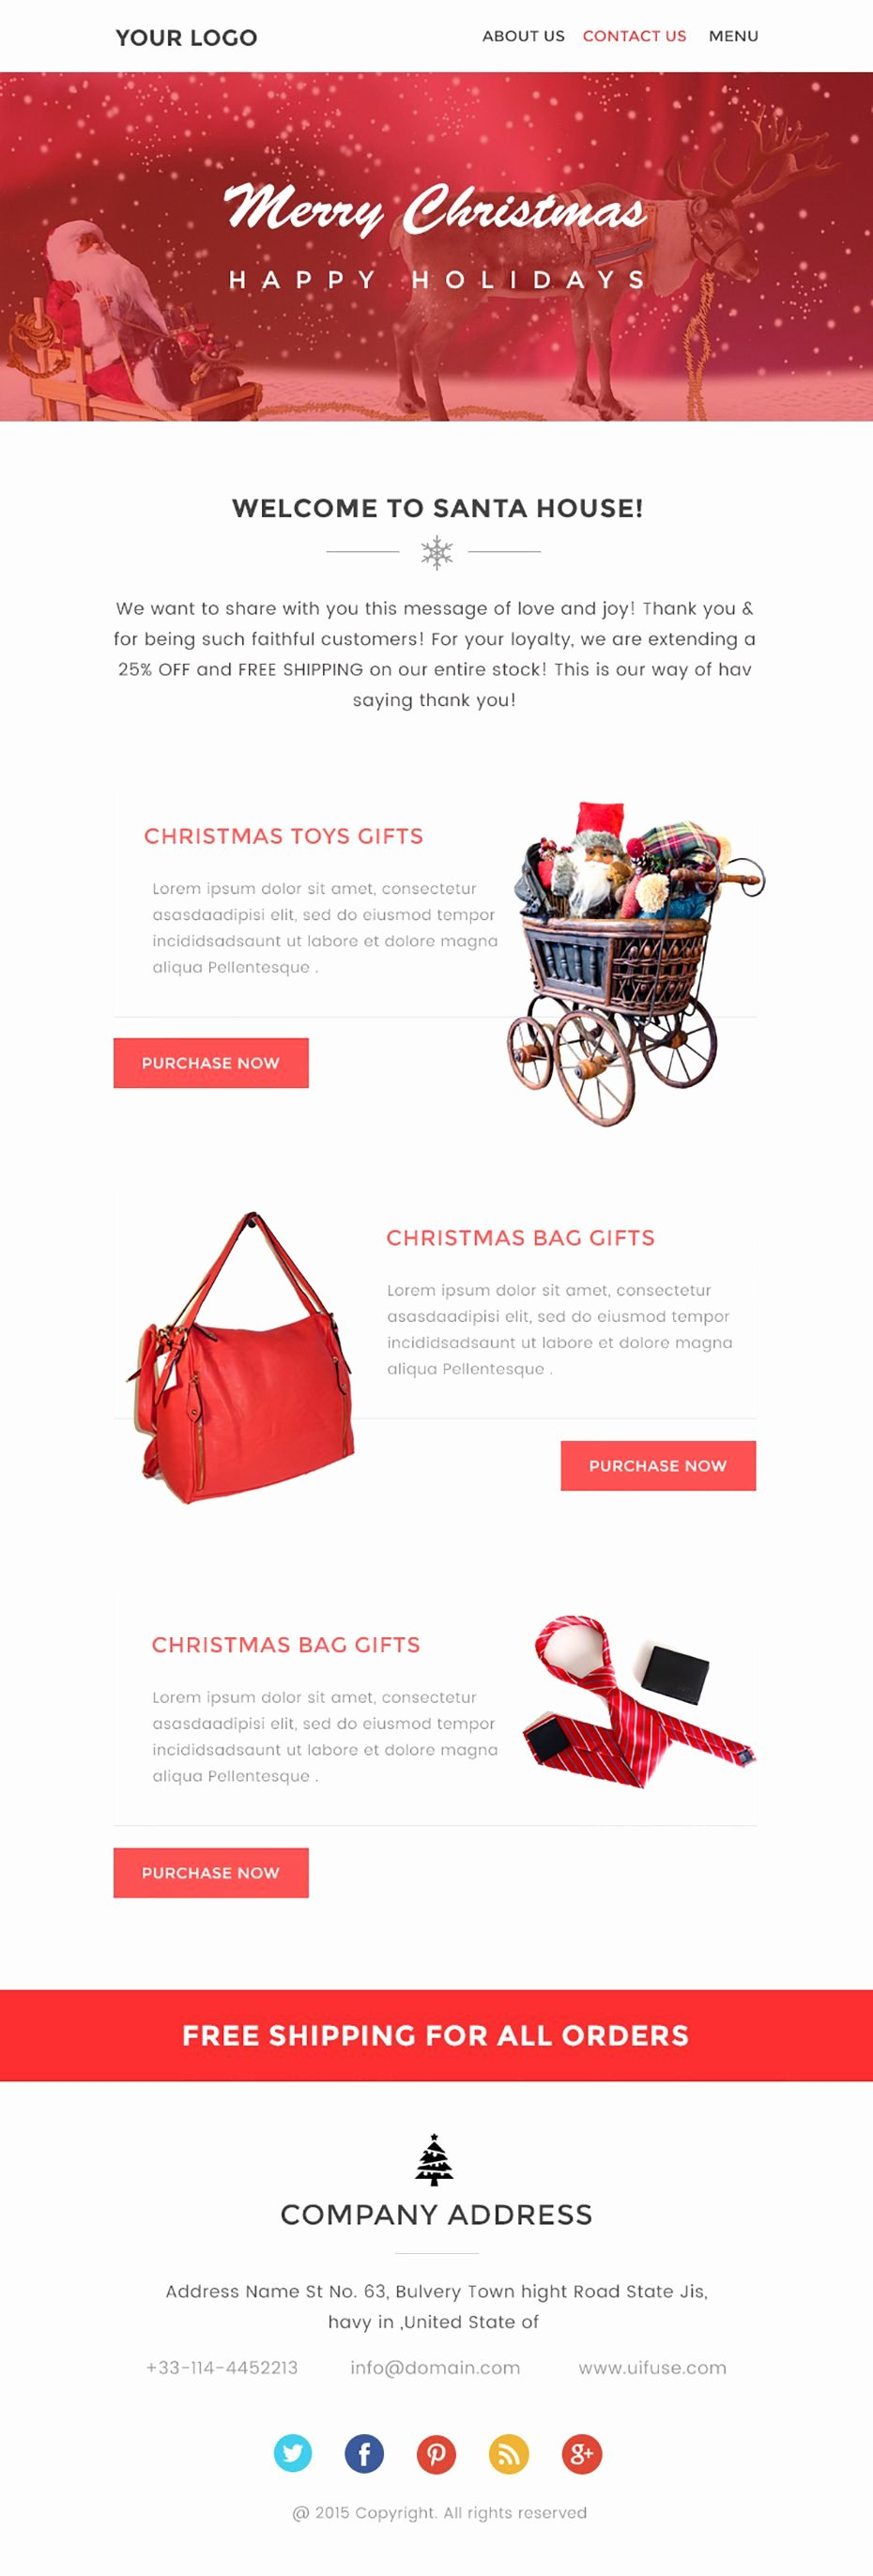 Christmas Newsletter Template – Free Psd Download Uifuse